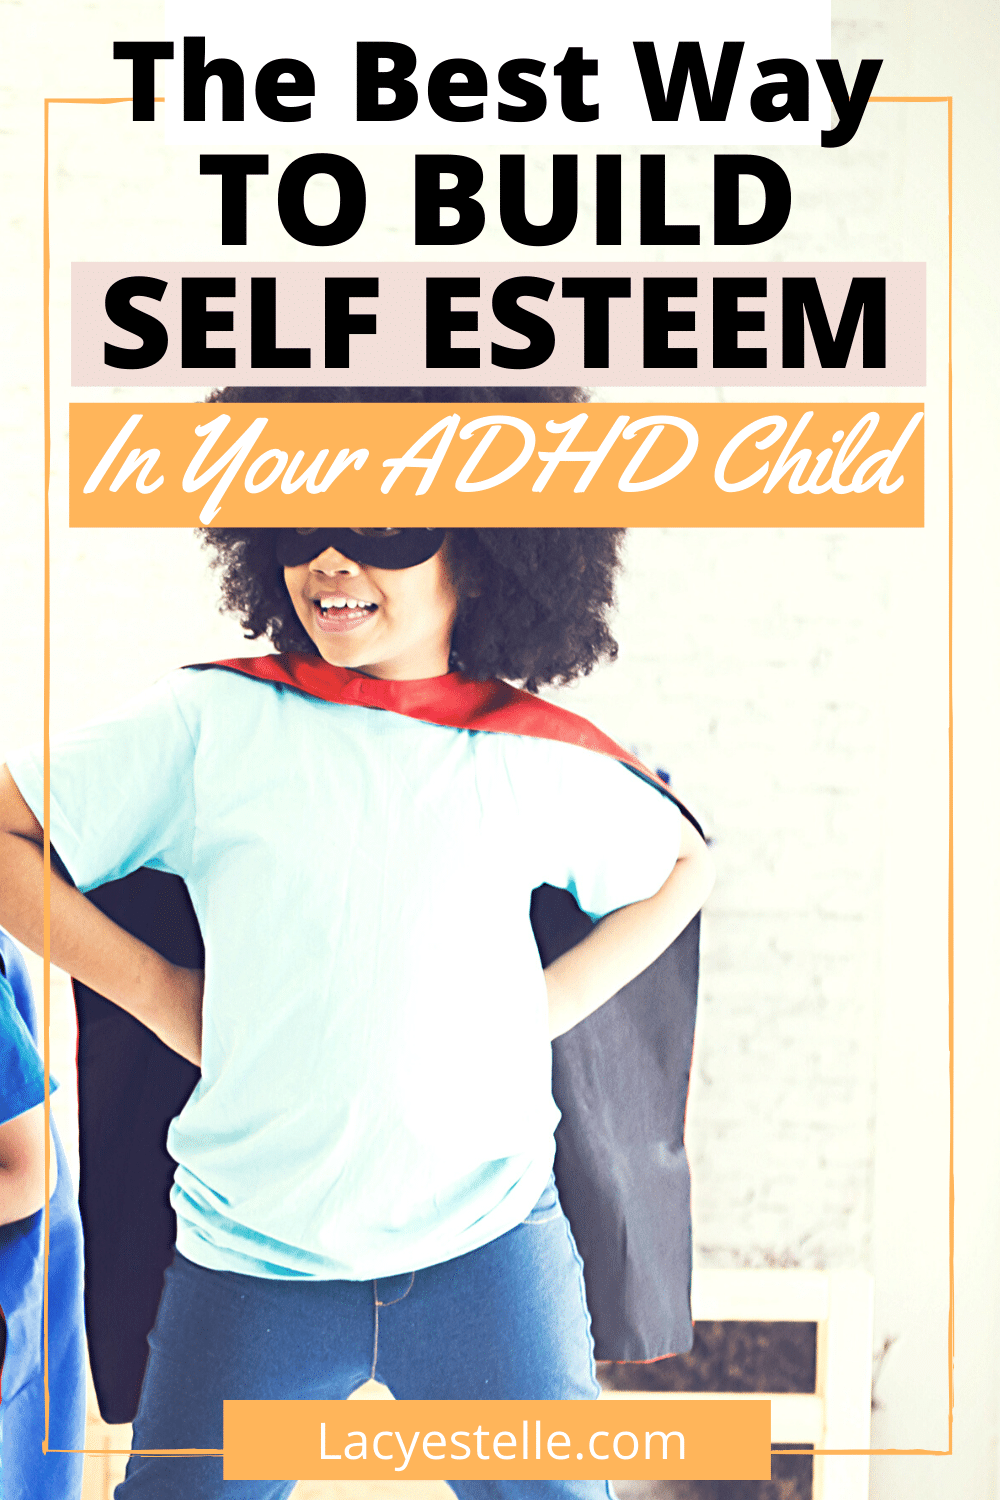 How to build self esteem in your ADHD child. This one way will help your ADHD child build confidence immediately.